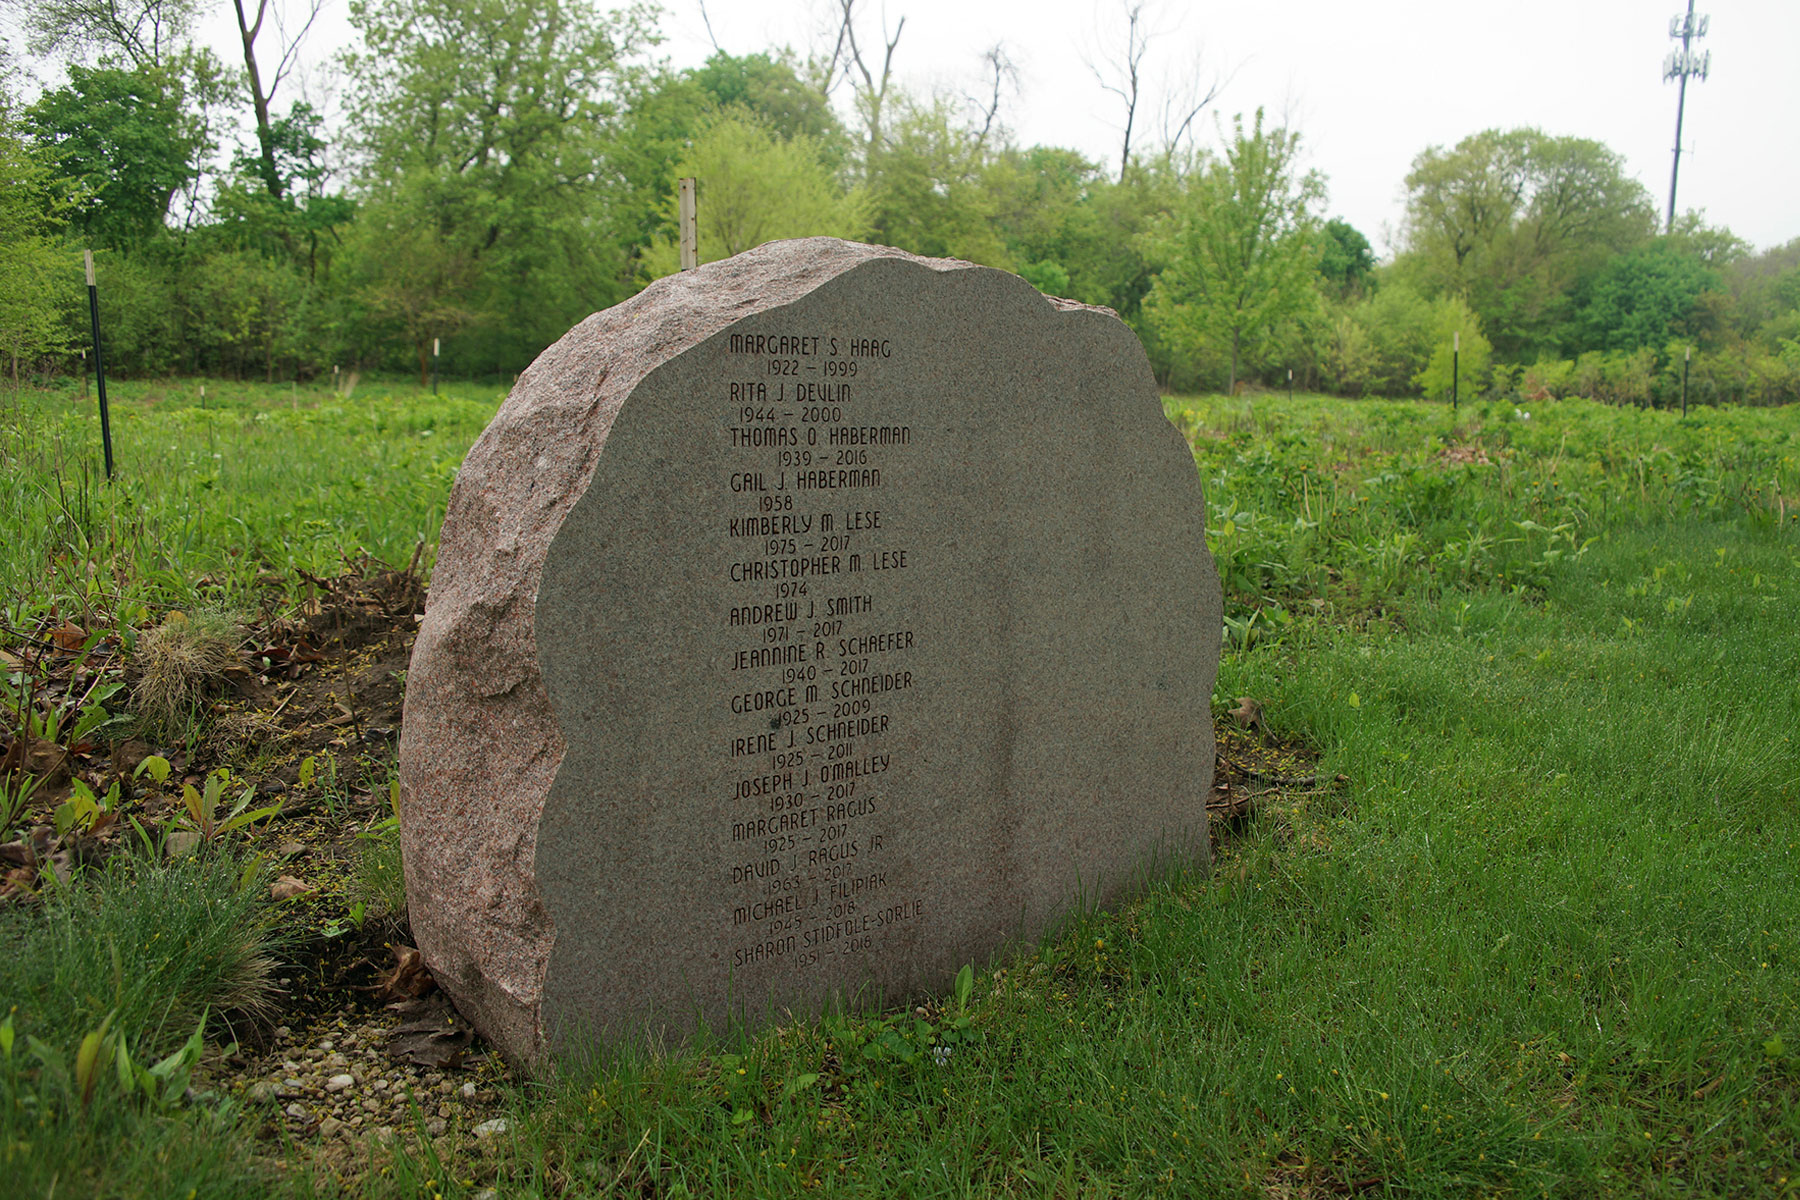 Forest Home Cemetery's Green Burial site is a traditional